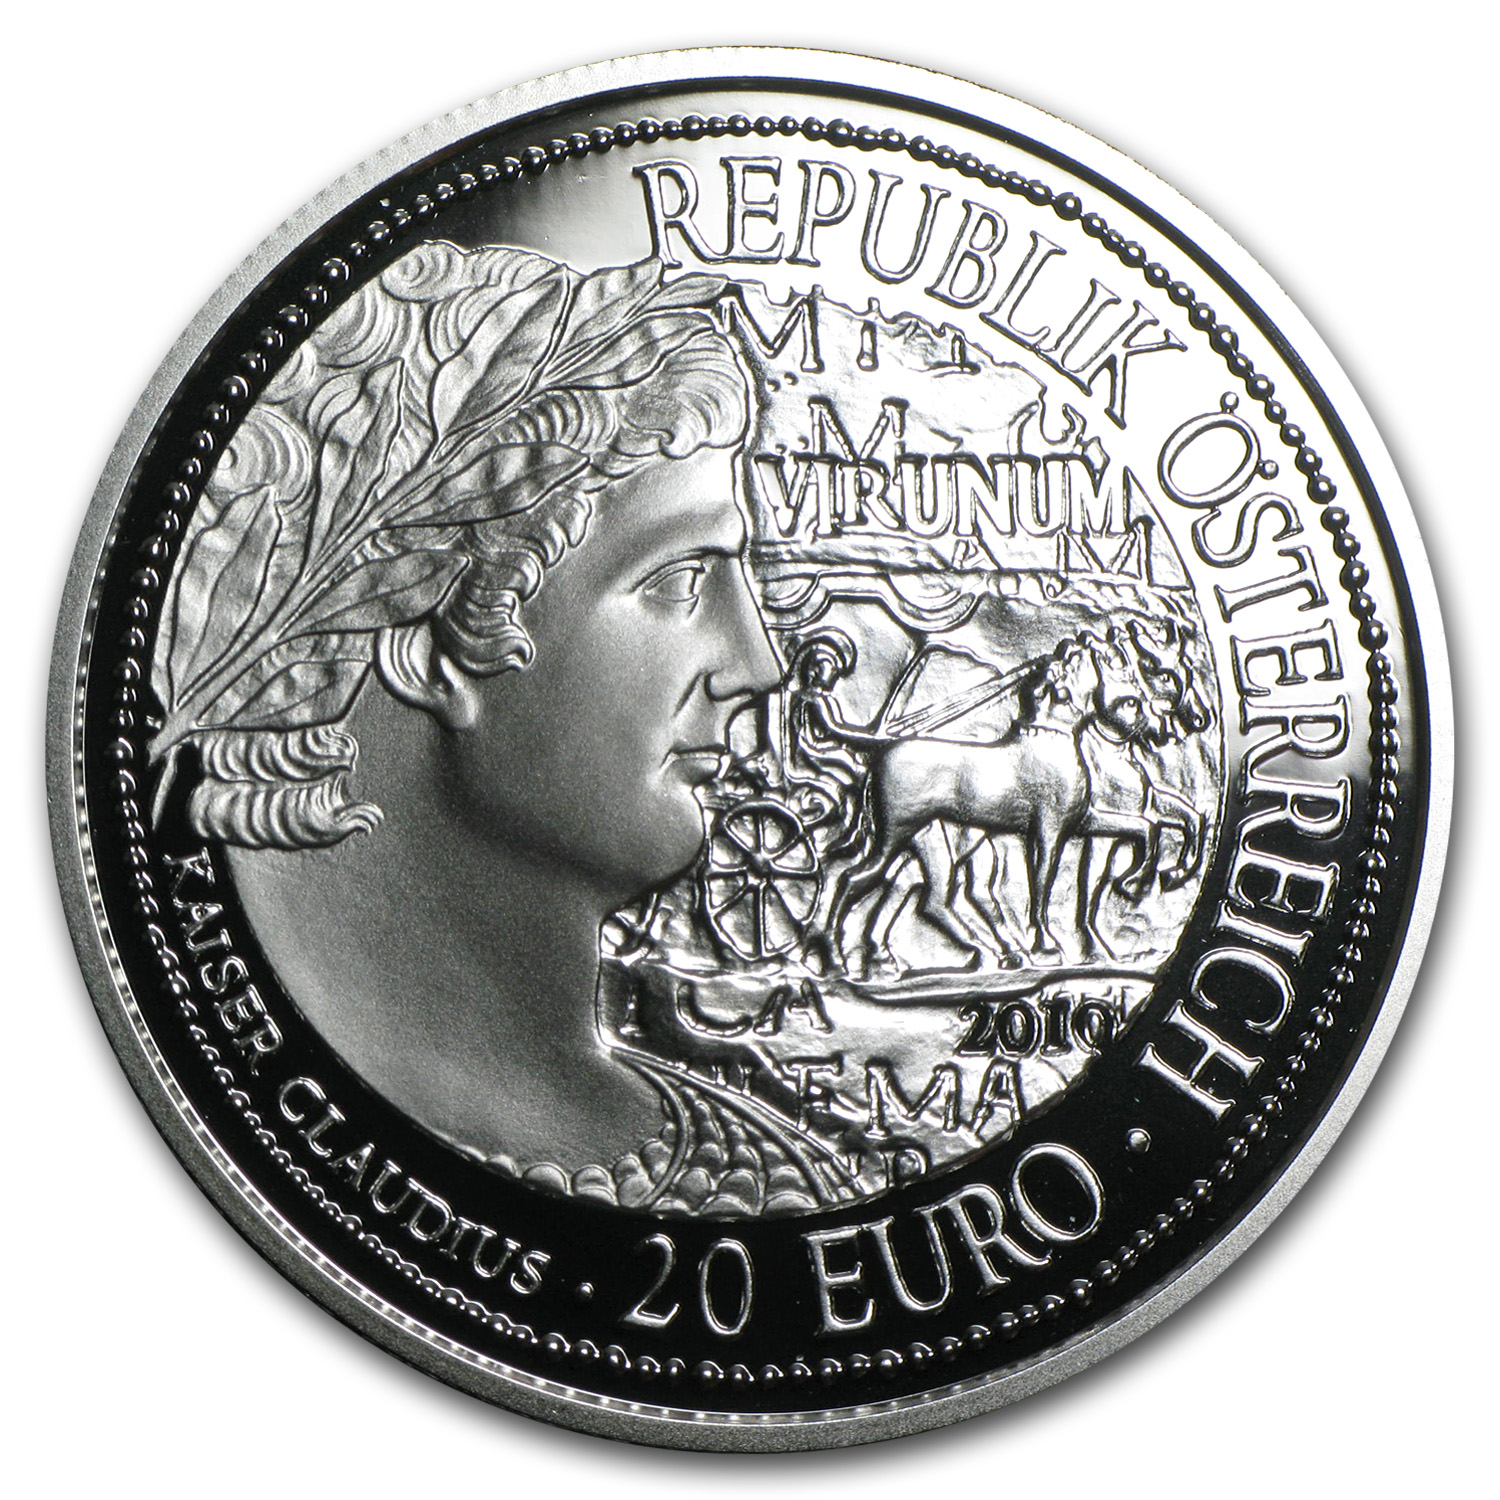 2010 Austria Silver €20 Virunum Proof